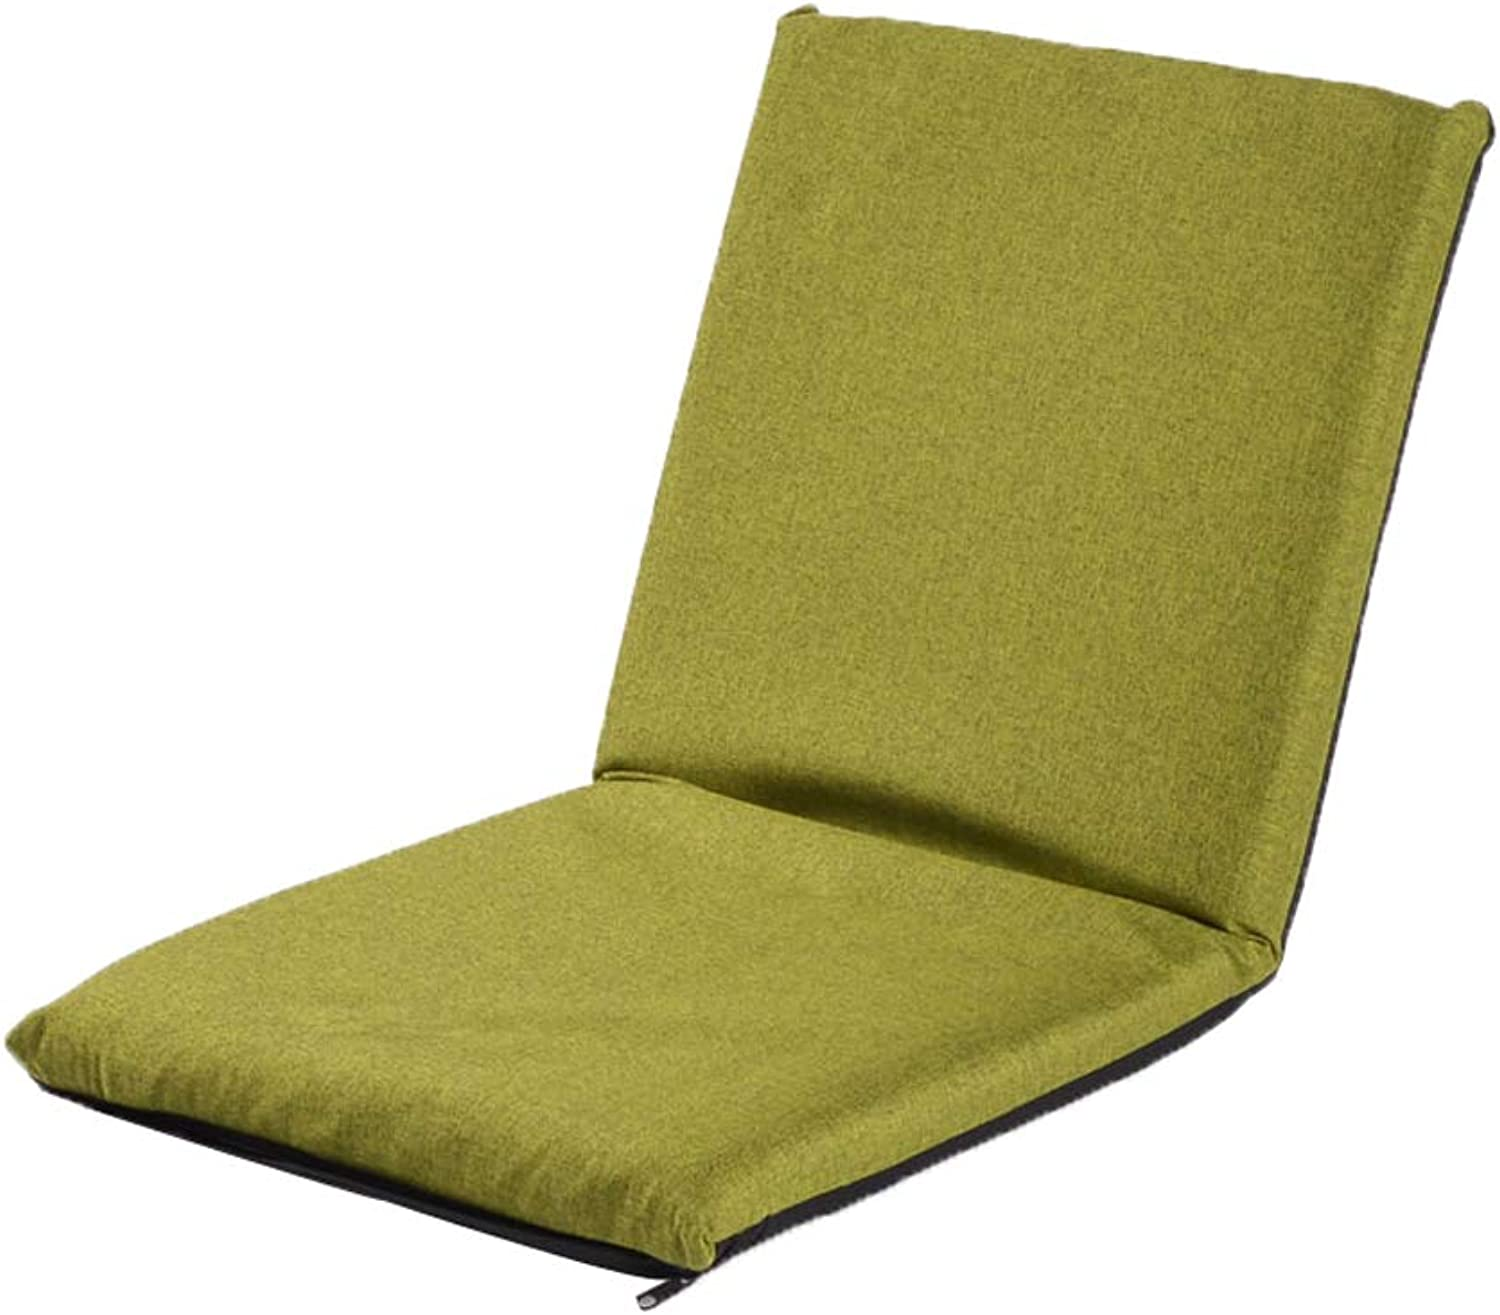 FH Lazy Couch, Tatami Backrest Can Be Folded in The Winter and Summer Dual-use Balcony Bay Window Lounge Chair, Can Be Used for Meditation Reading Newspaper, Multi-color Optional (color   Green)